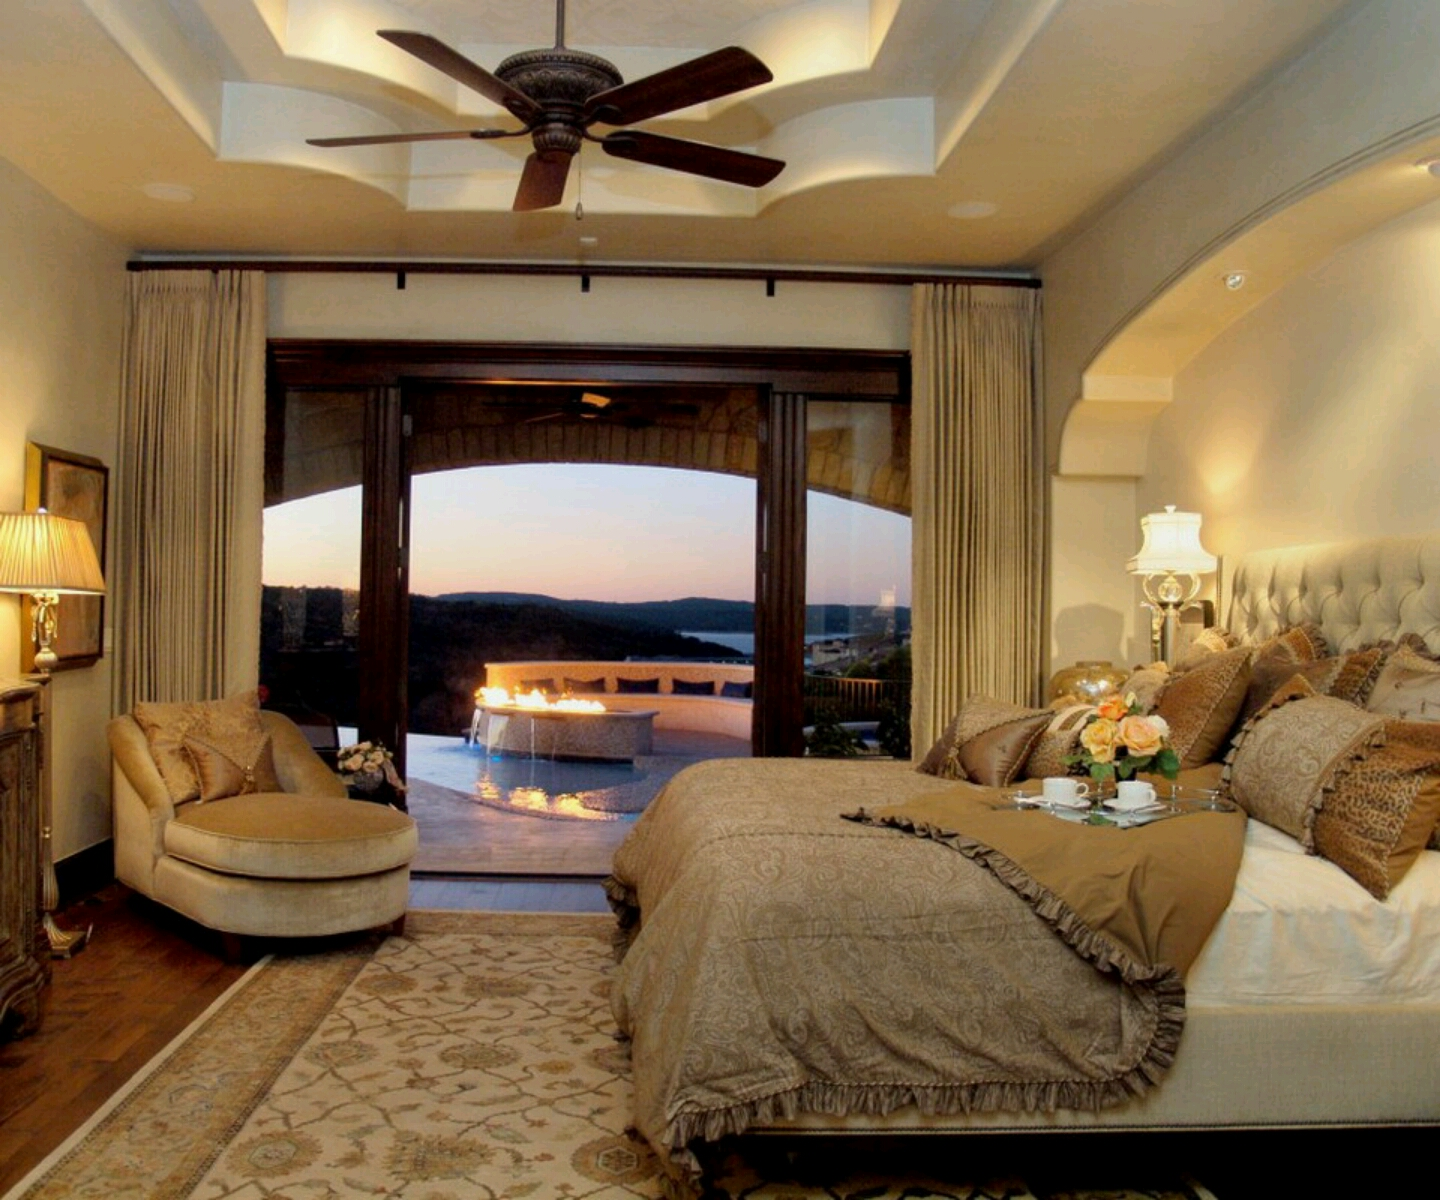 New home designs latest modern bedrooms designs ceiling for New bedroom decoration